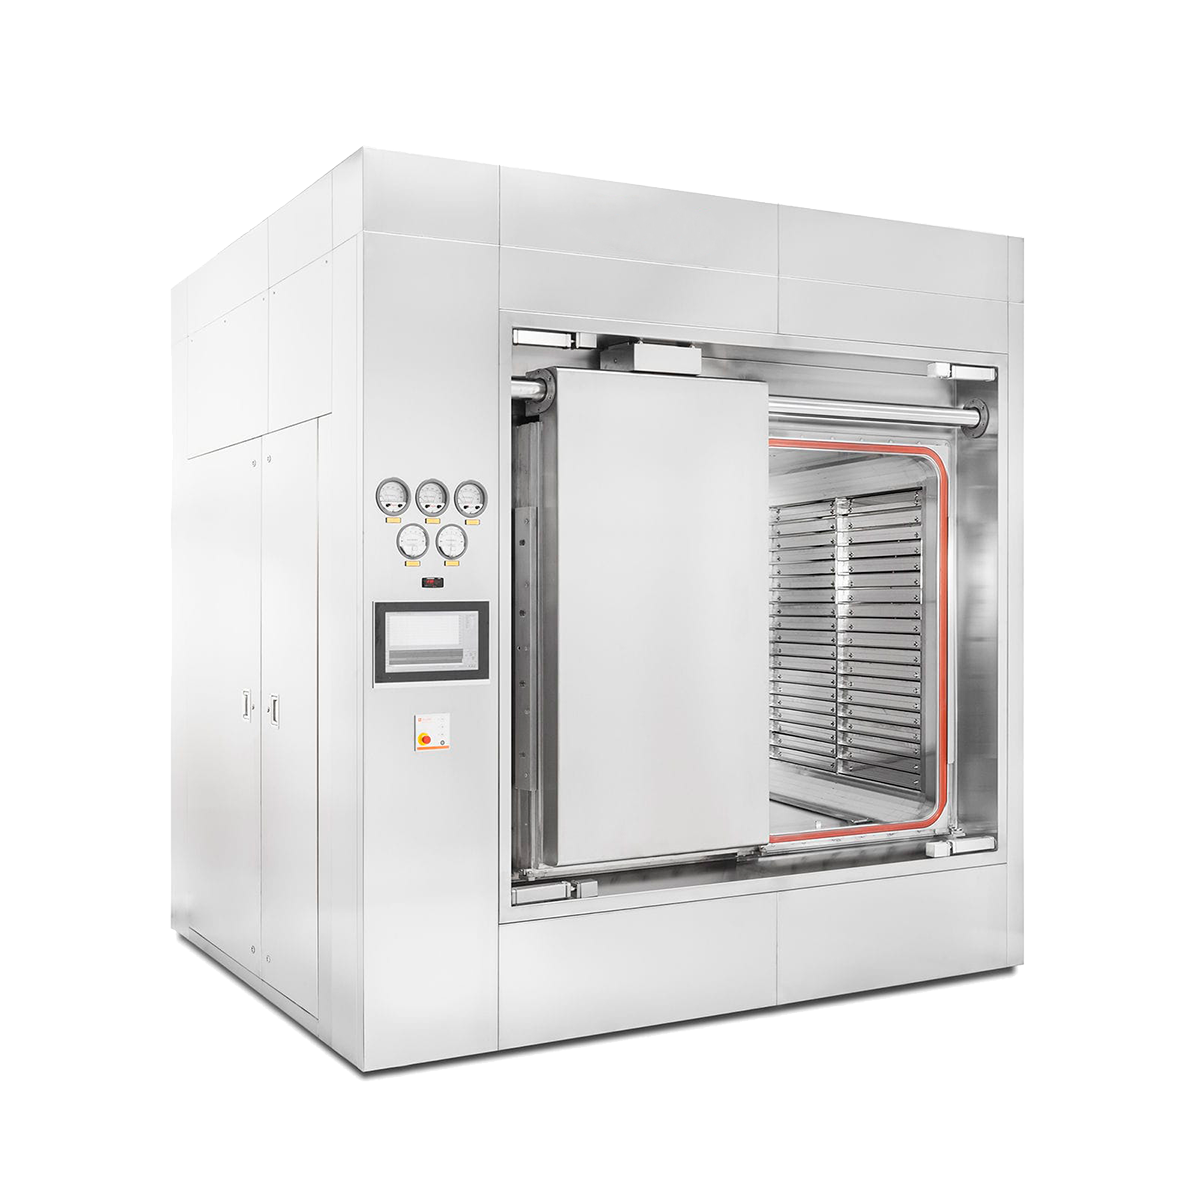 Sterilizers for the pharmaceutical industry